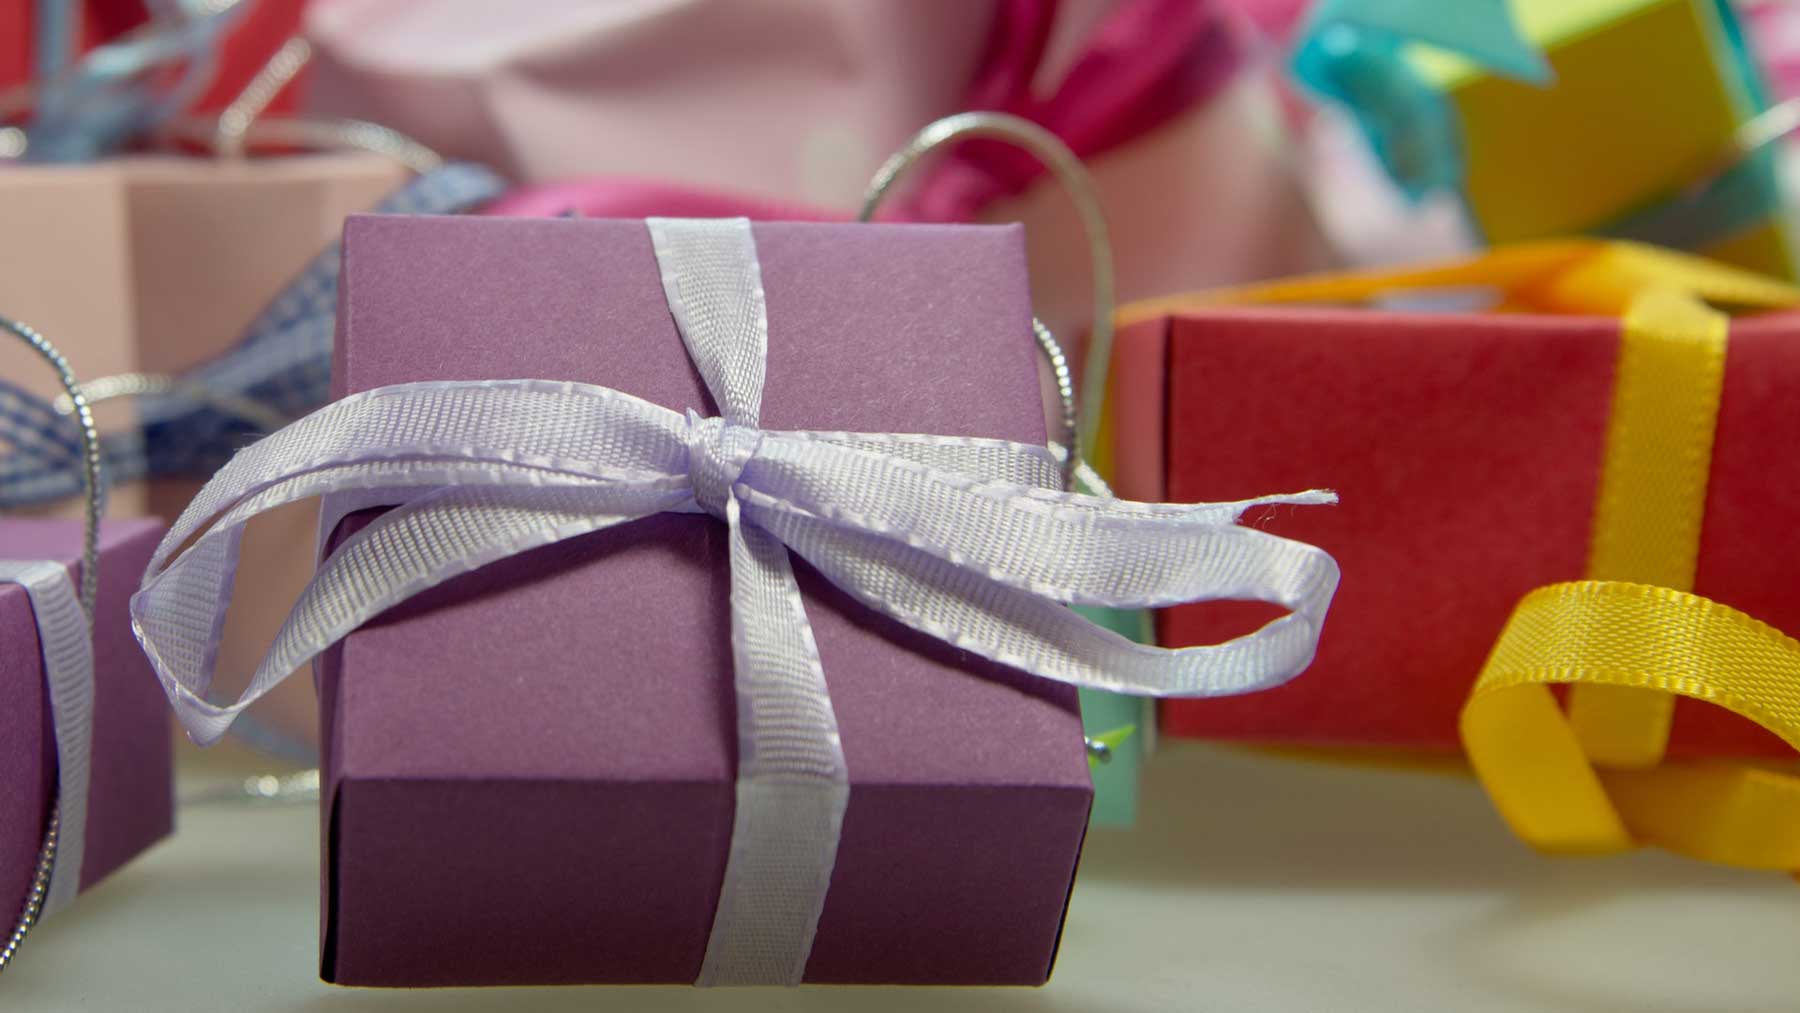 colourfully wrapped presents to represent giving